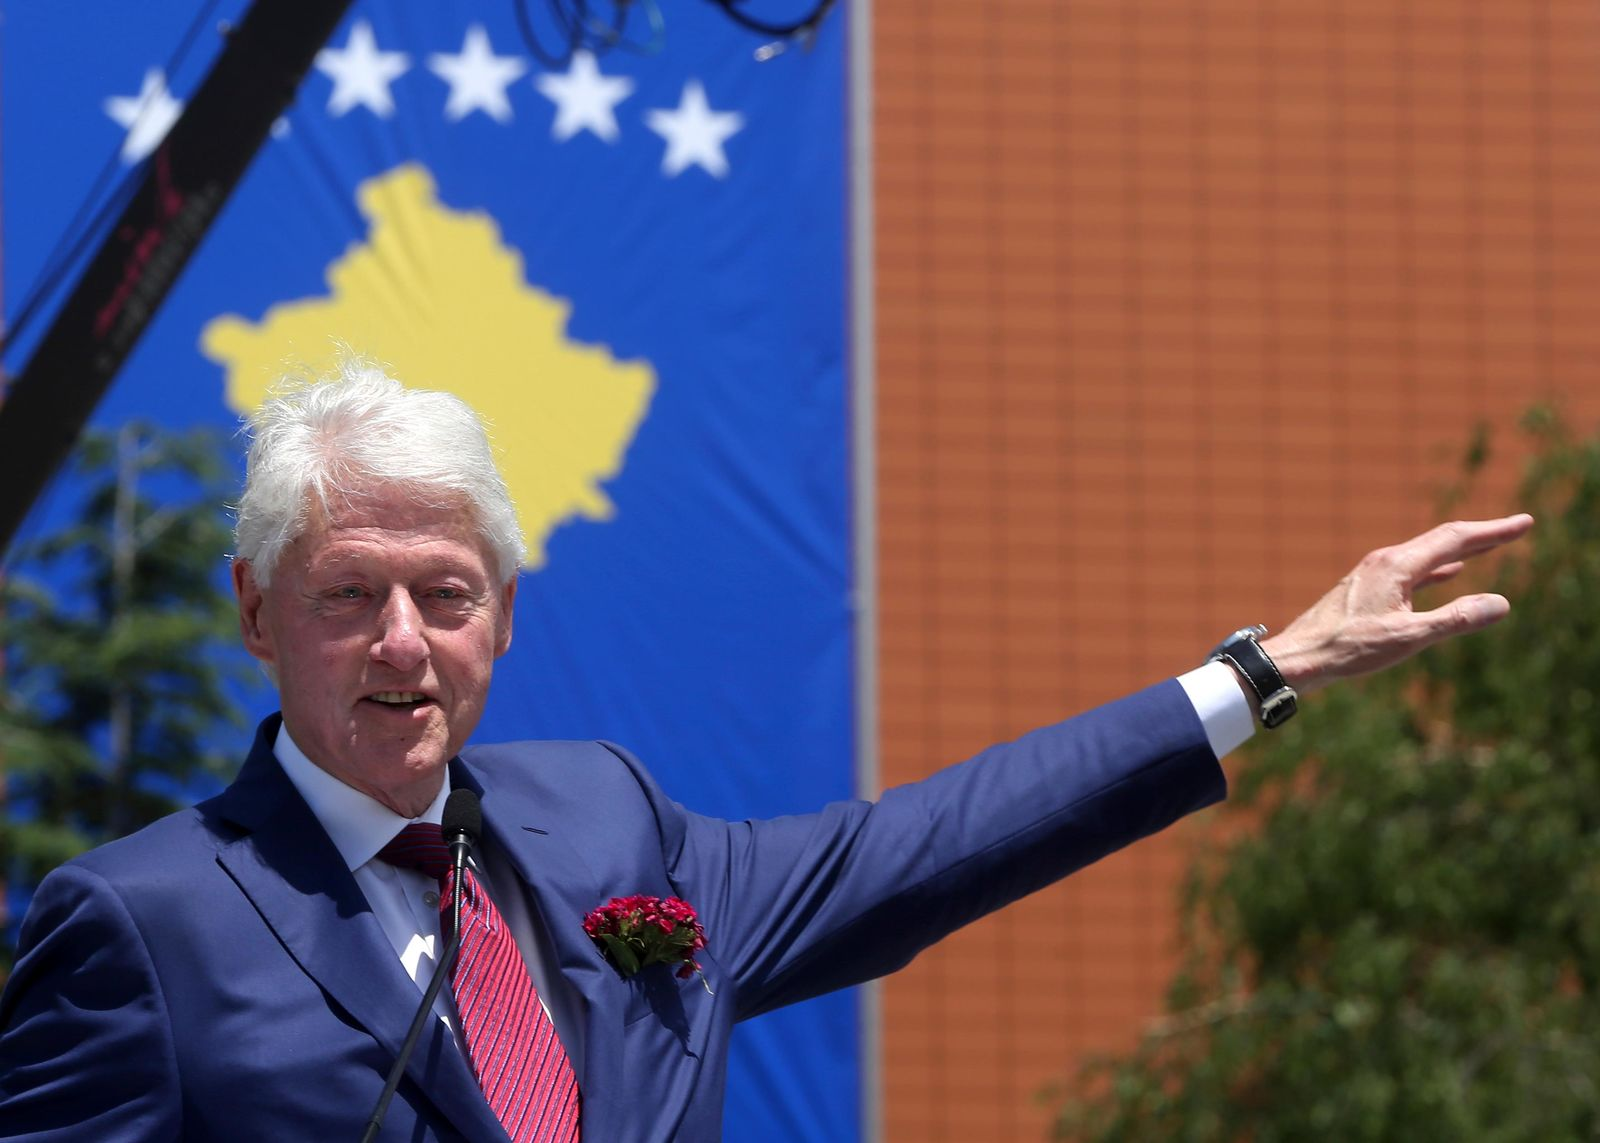 Former U.S. President Bill Clinton speaks and gestures during anniversary celebrations in the capital Pristina, Kosovo, Wednesday, June 12, 2019.{ } (AP Photo/Visar Kryeziu)